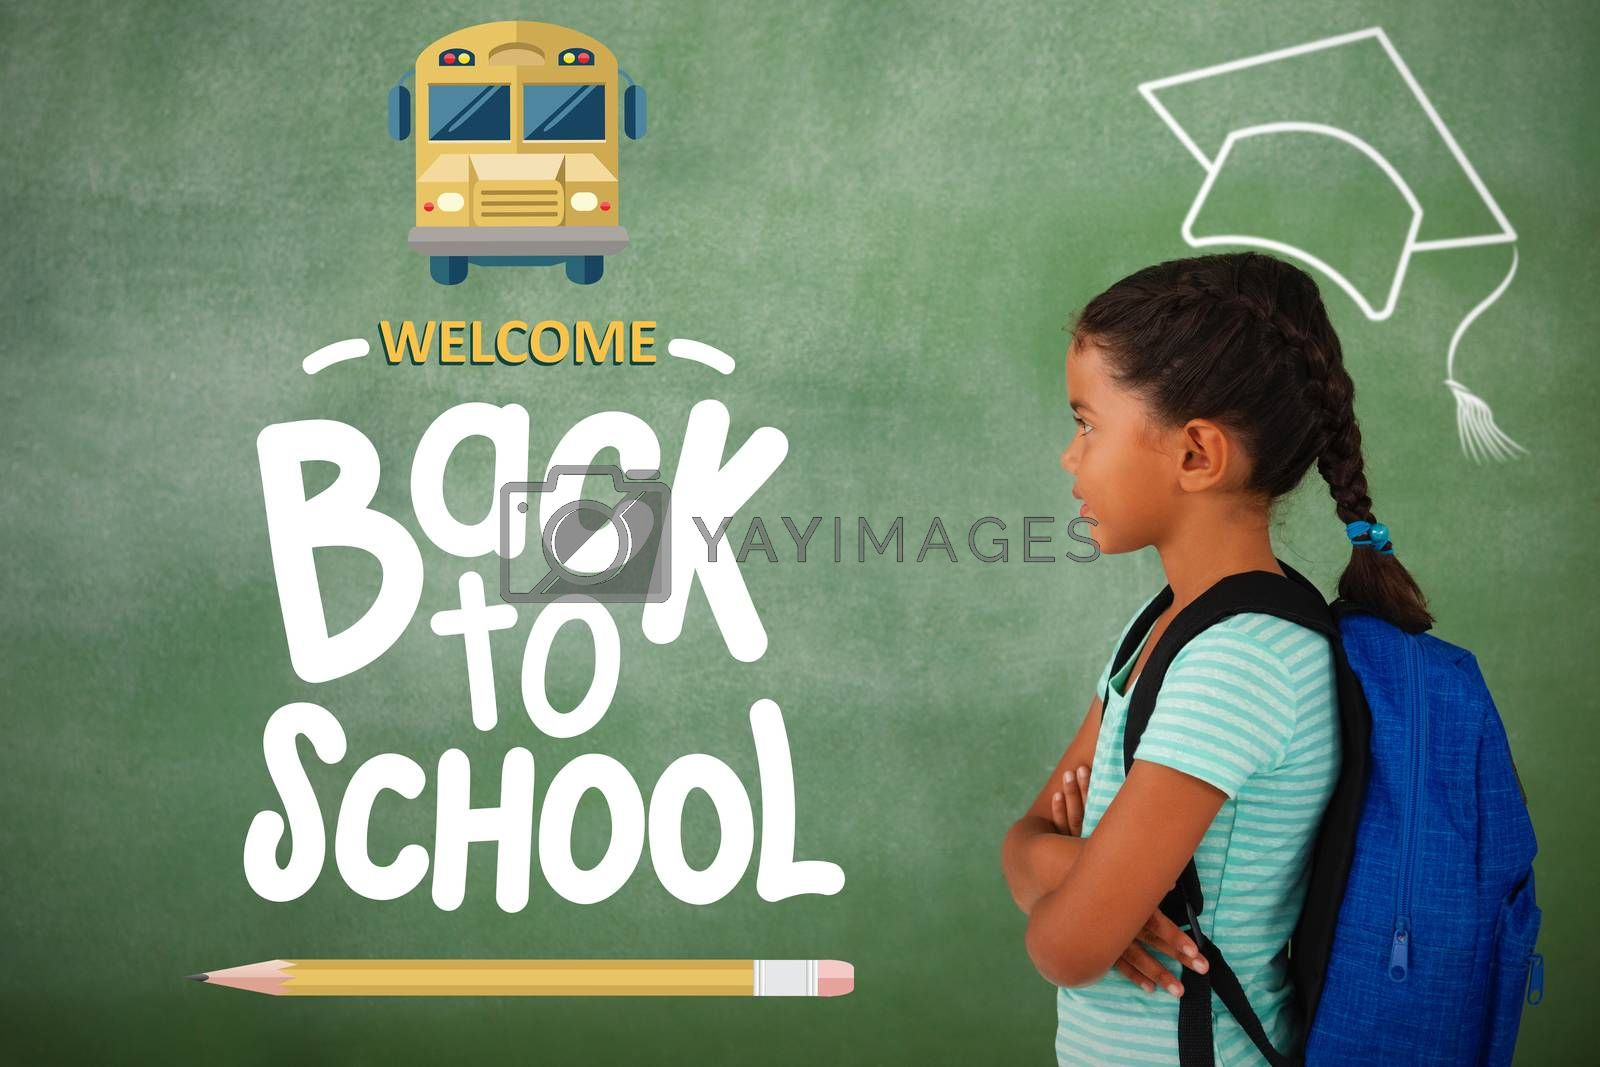 Composite image of back to school by Wavebreakmedia